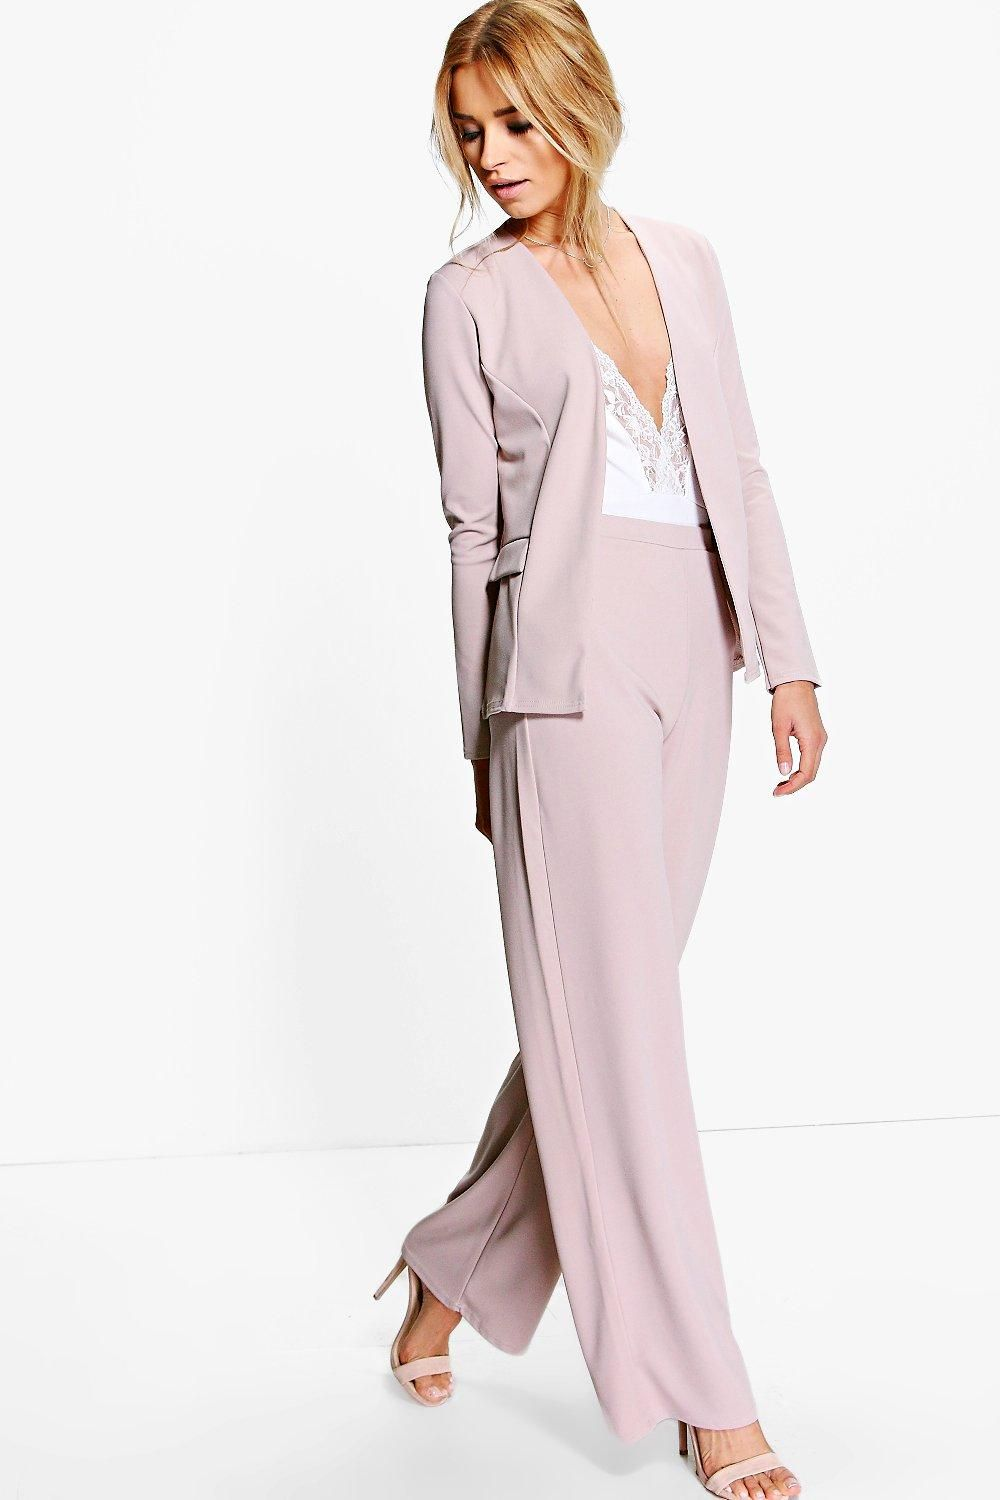 f6781c26c7551 Martha Wide Leg Trouser at boohoo.com | Outfits in 2019 | Ladies ...